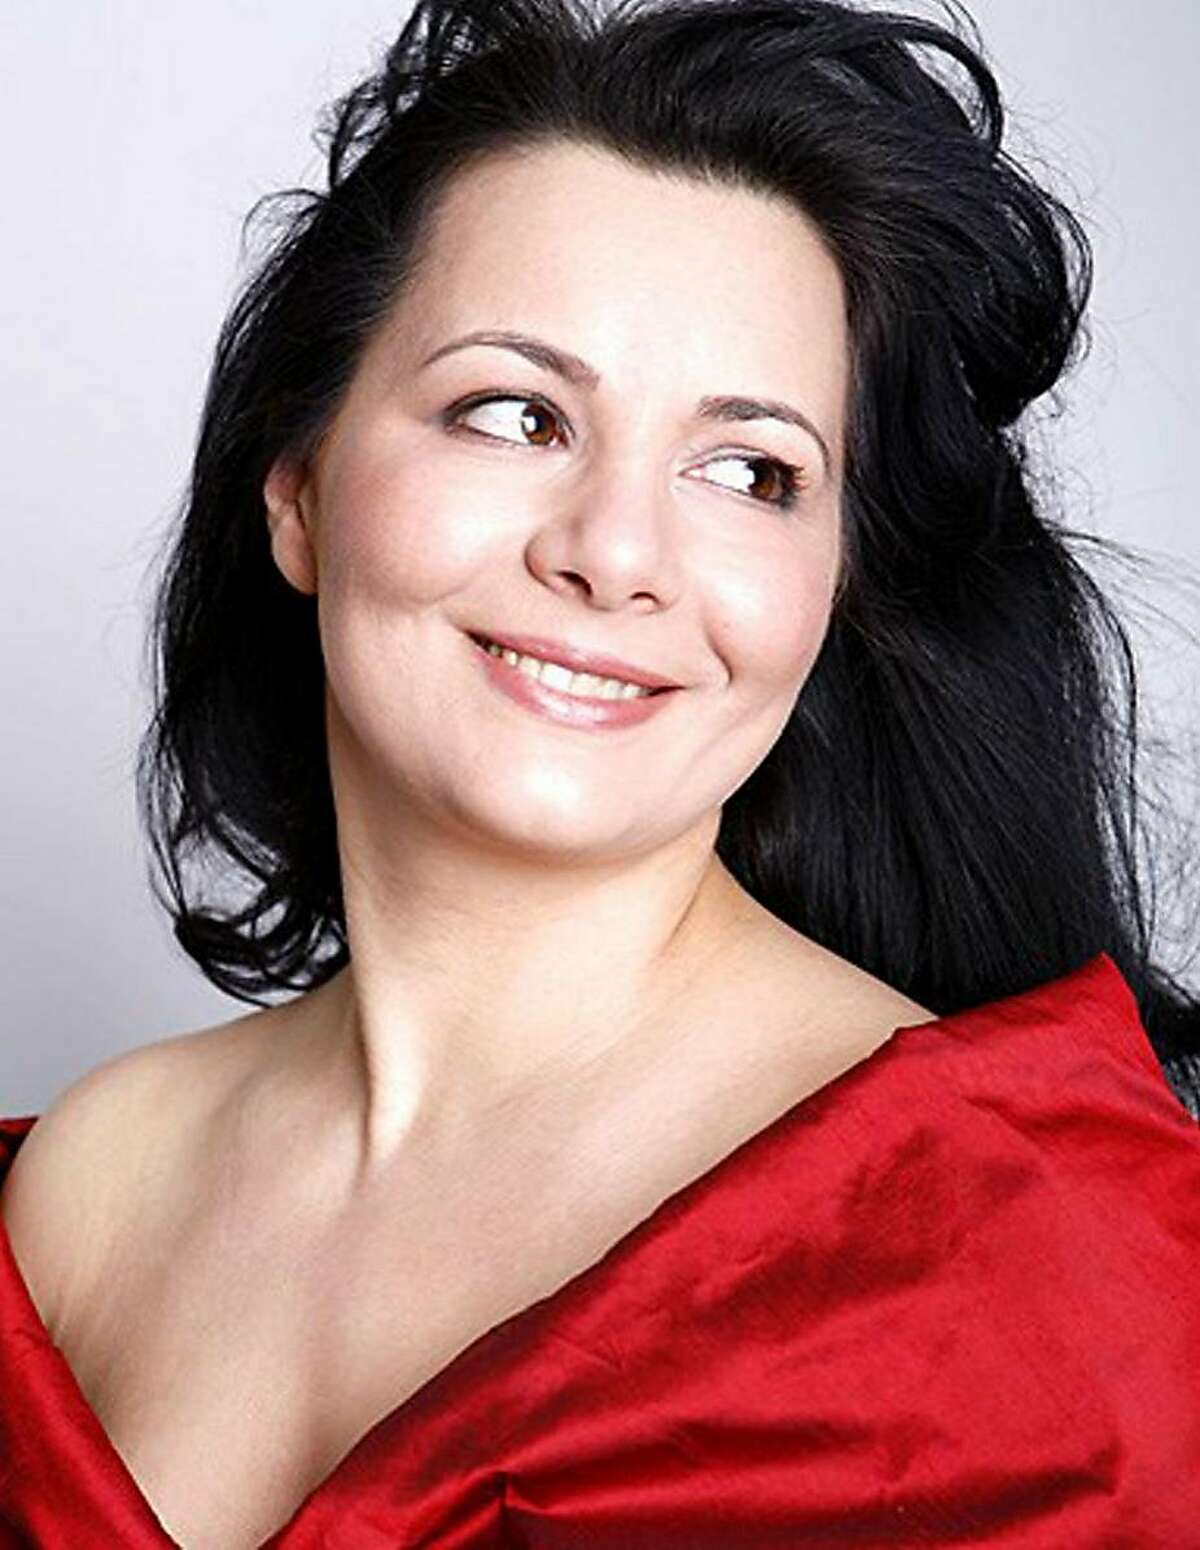 """Soprano Lianna Haroutounian sings the title role in Puccini's """"Tosca"""" at the San Francisco Opera, 7:30 p.m. Thursday"""